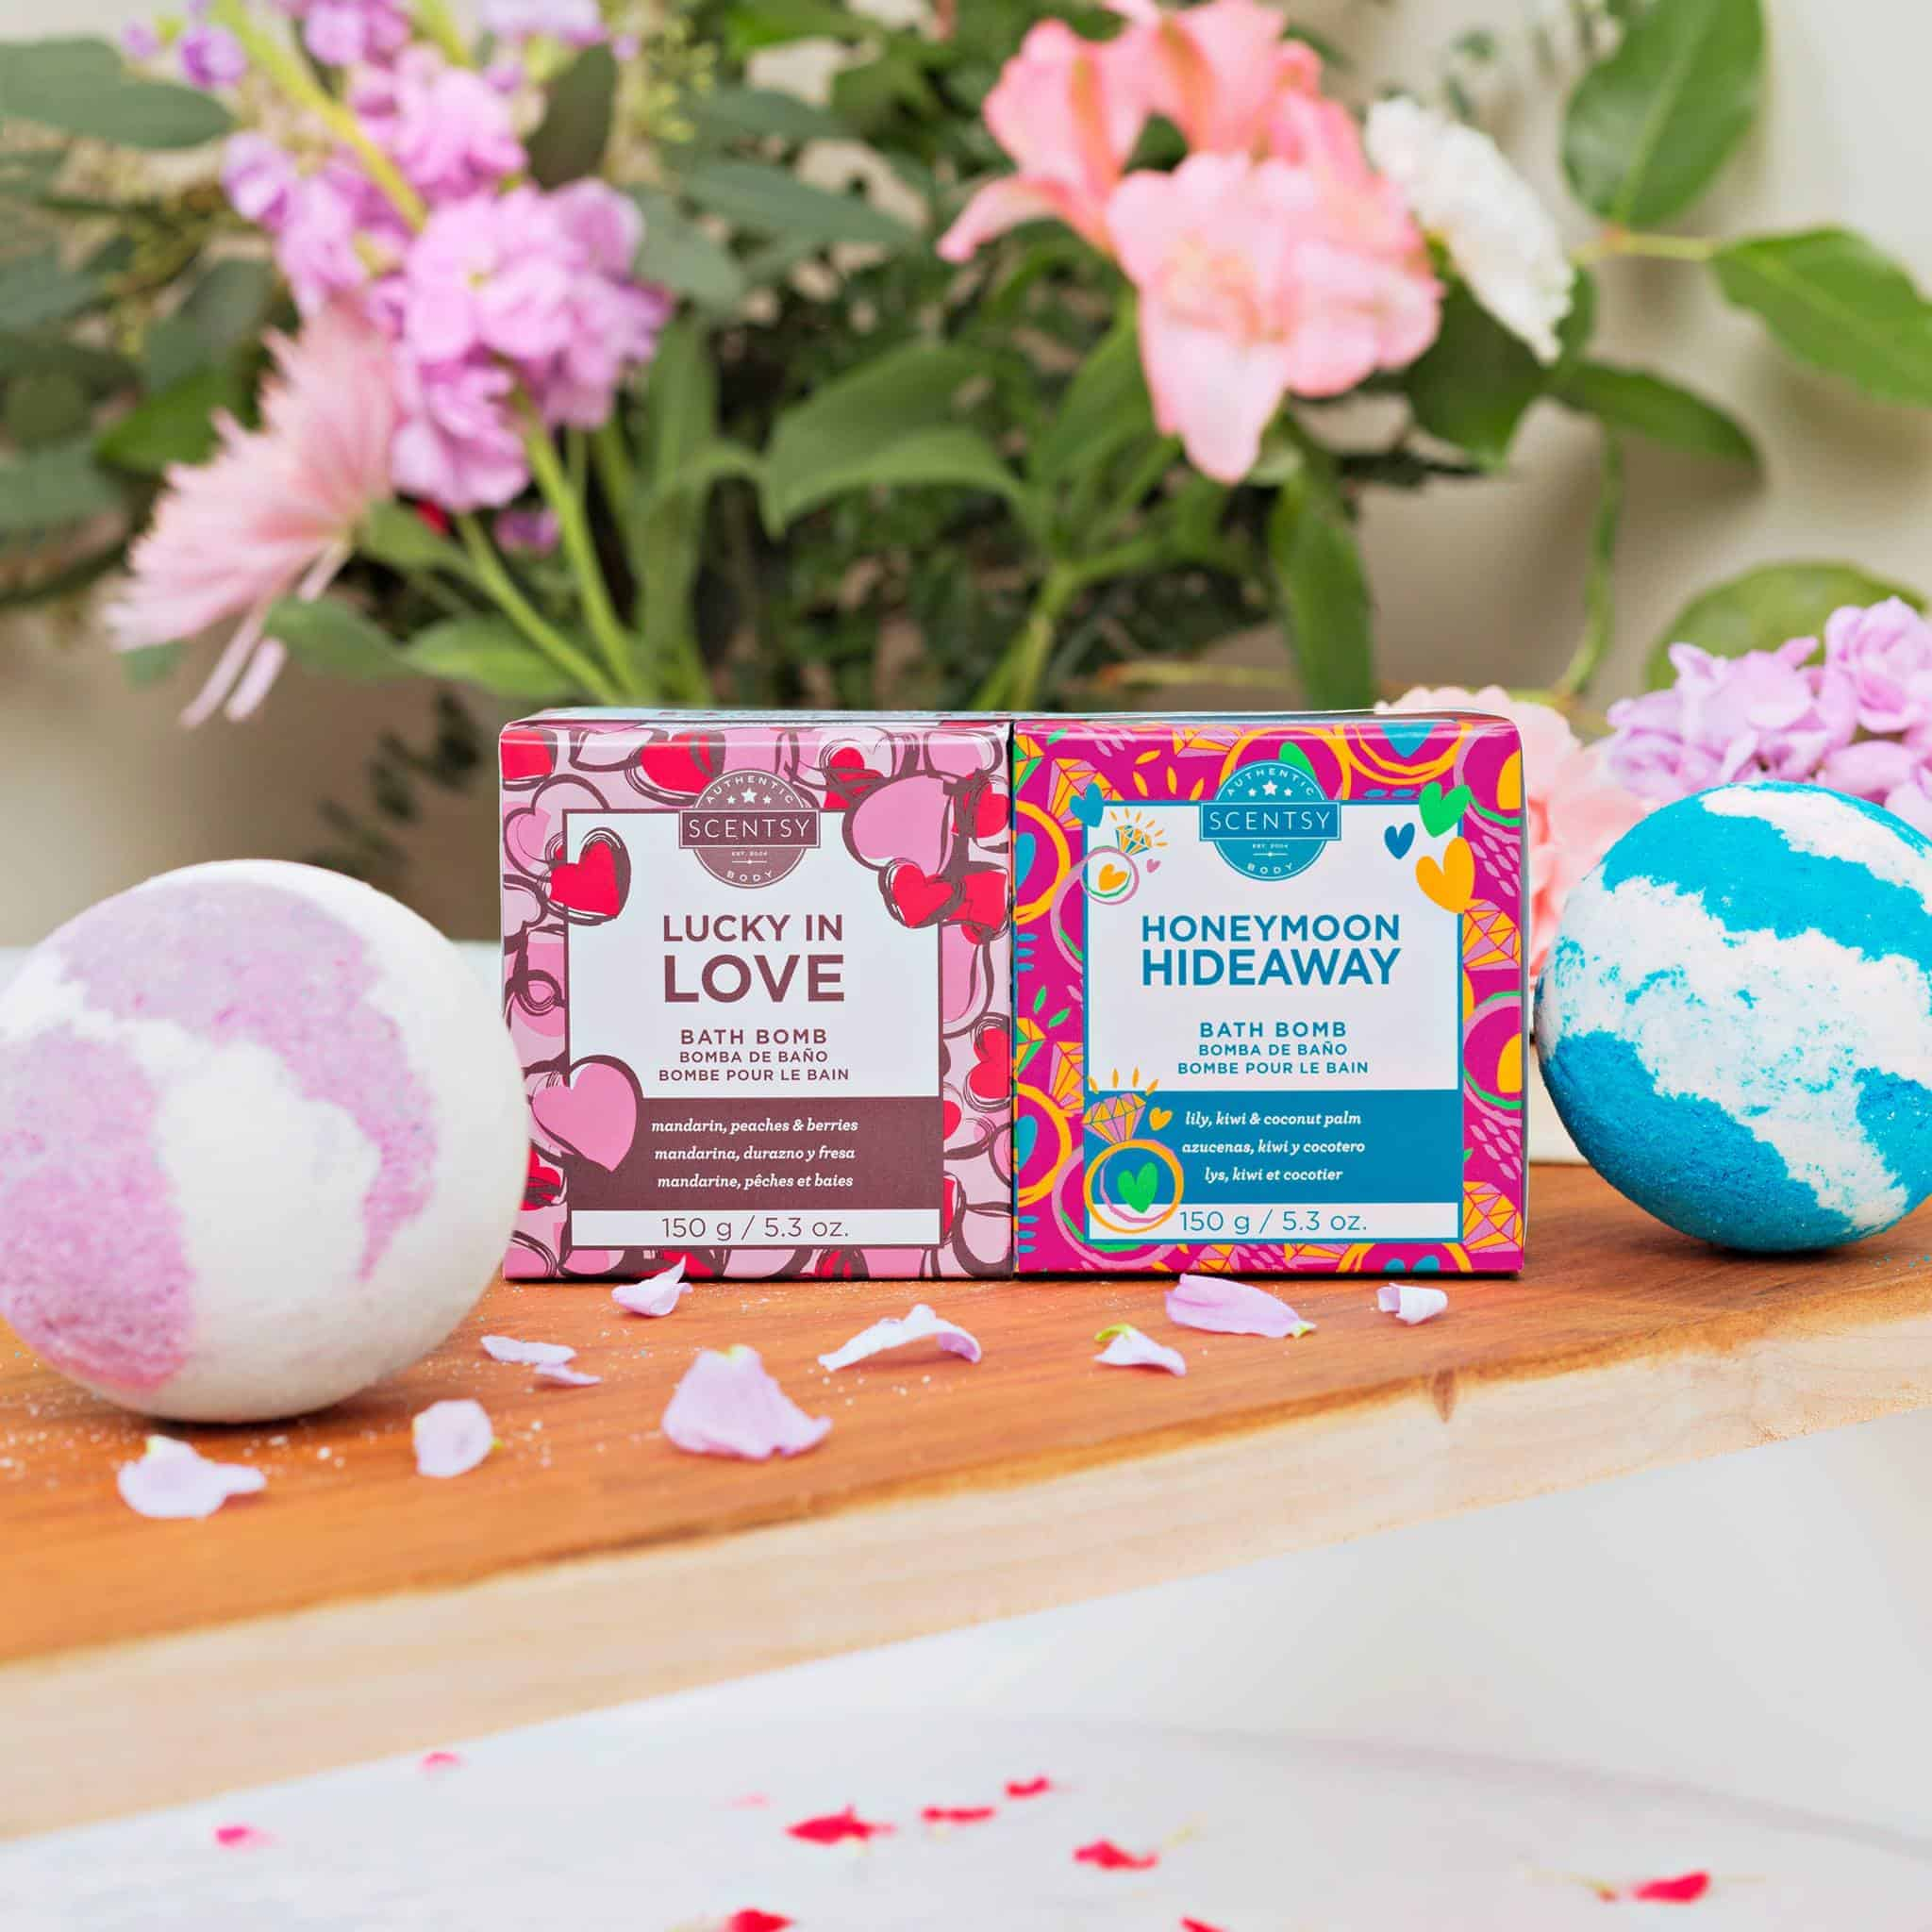 Valentines day special bath bombs